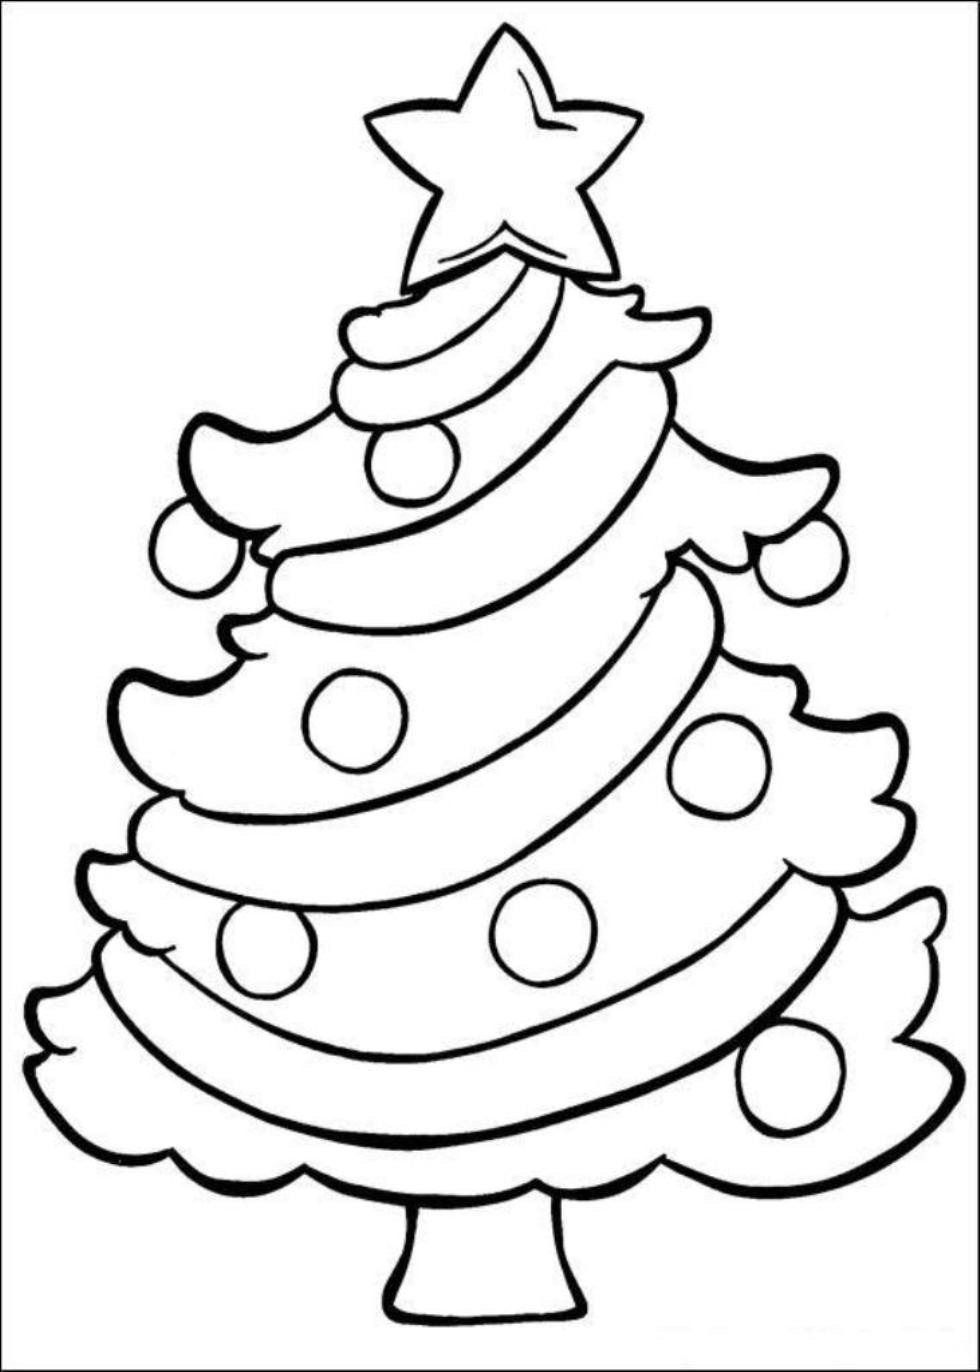 Christmas Coloring Kindergarten With Best Pages For Printable And Online